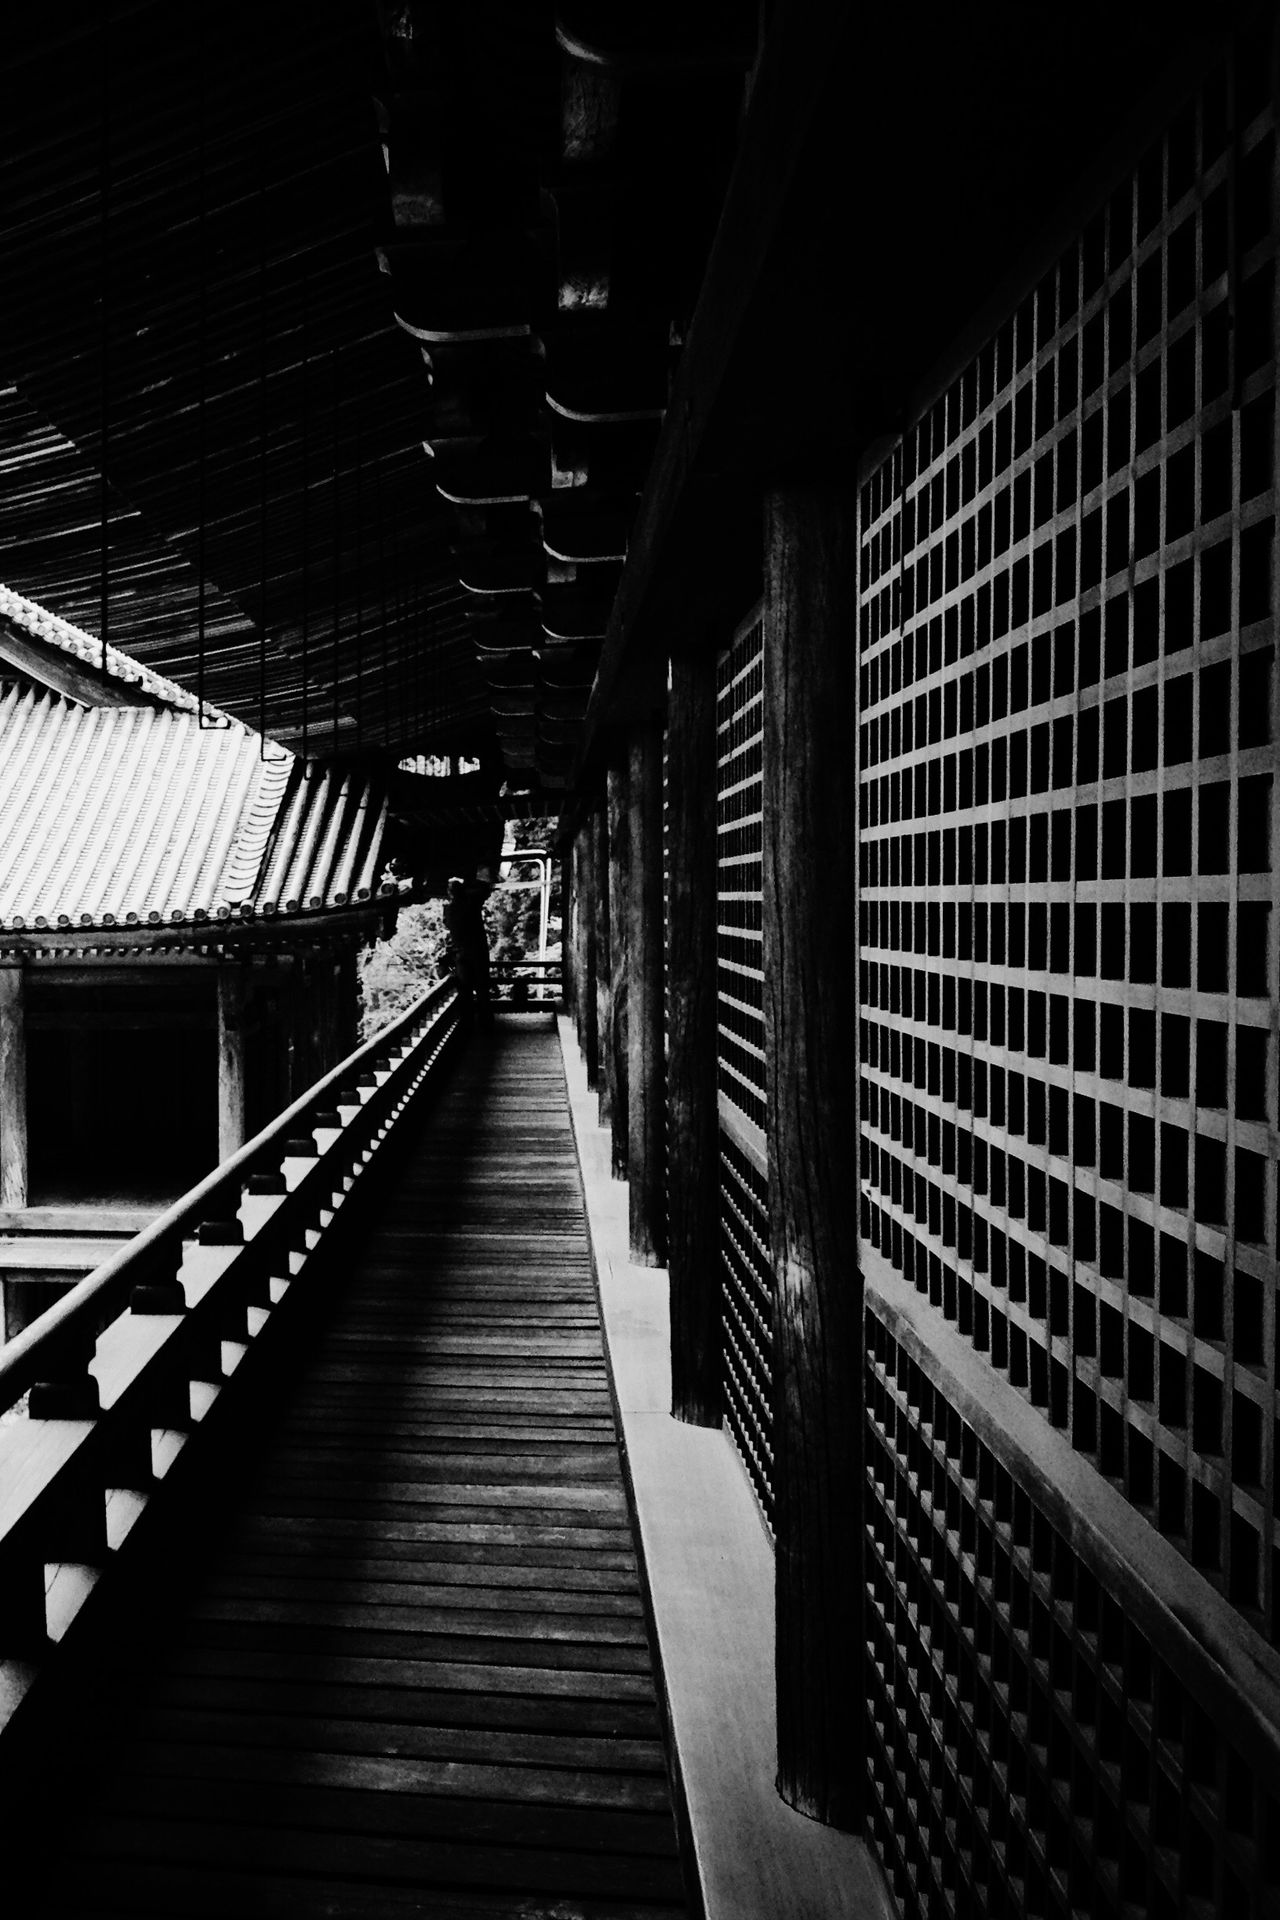 The Way Forward Indoors  No People Architecture Day Windows Doors Walkway Japan Japanese Style Japanese Culture Black And White Blackandwhite Building Exterior Built Structure Building Light And Shadow Temple Temple Architecture